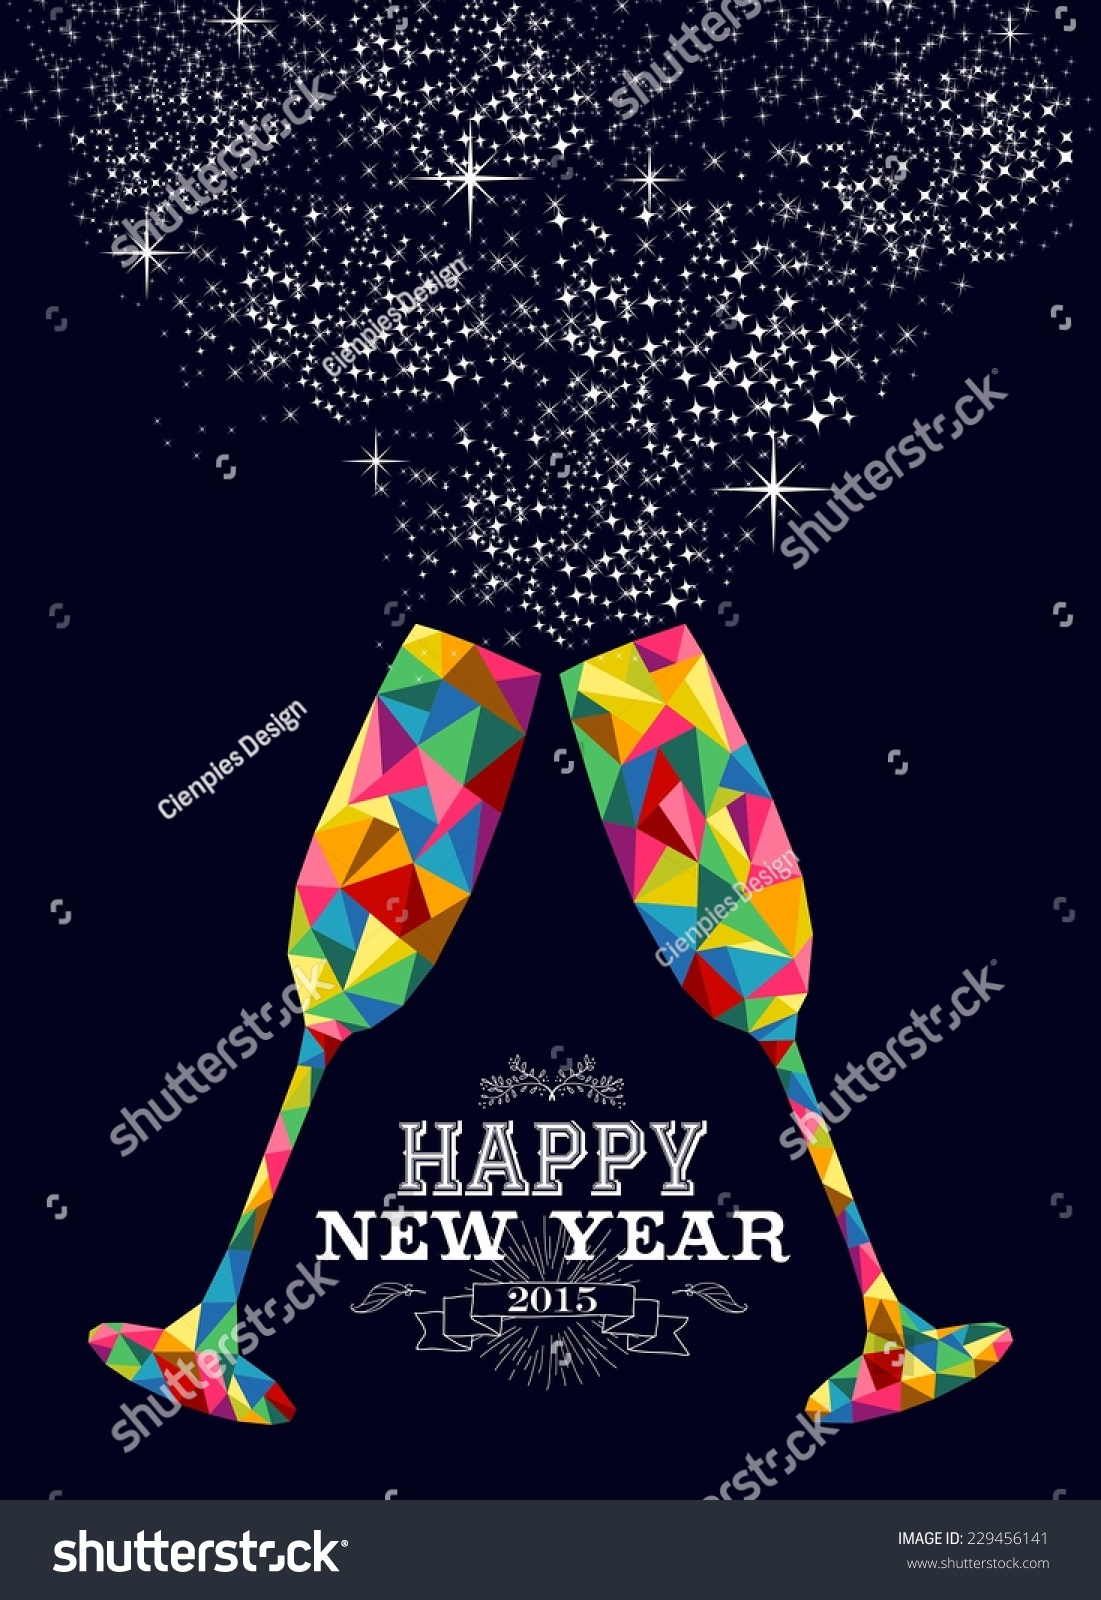 Happy New Year 2015 Greeting Card Stock Vector 229456141 Shutterstock